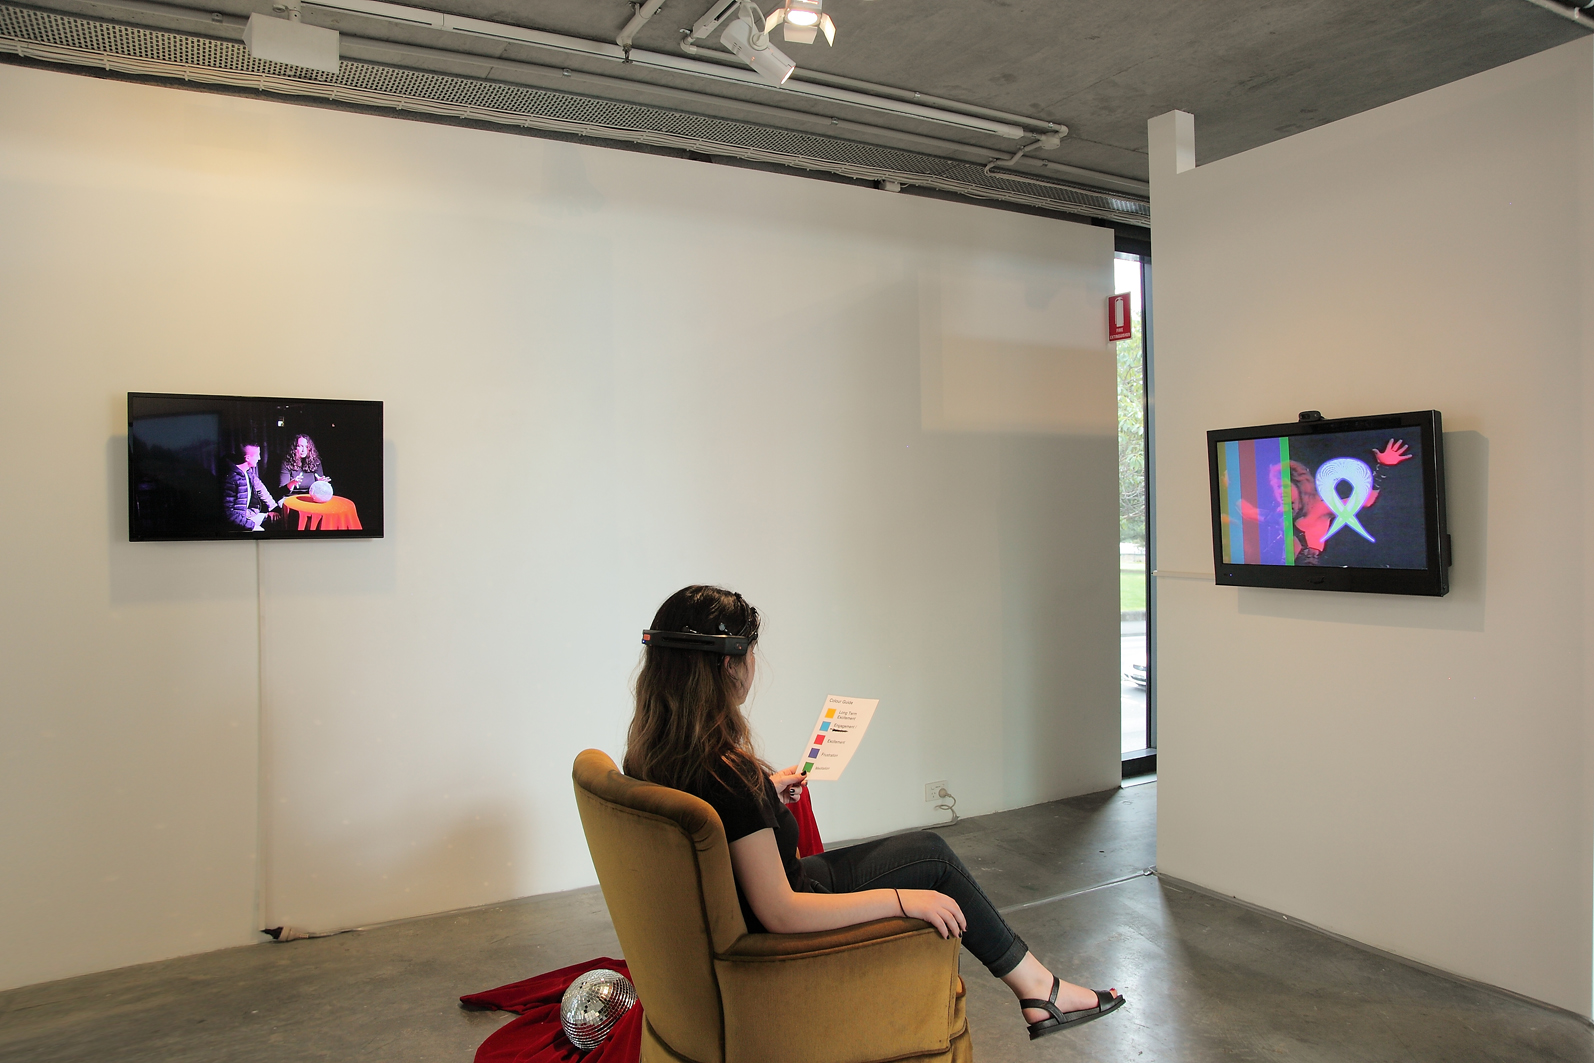 Jacquelene Drinkall,  Visual Telepathies  exhibition installation view at Verge Gallery, 2015, showing two artworks. LEFT/CENTRE: Jacquelene Drinkall, 'Disco Ball Gaze' HD video on HD monitors (colour, audio) disco ball, velvet cloth over small table, documentation of participatory endurance performance at The Cube, Oxford Art Factory, 2014 (no audio was exhibited in the Verge Gallery installation); and Jacquelene Drinkall in collaboration with Warren Armstrong, RIGHT/CENTRE: 'Hypnosis in Video for Brain Computer Interface' velvet chair, EEG neuroheadset and participant interaction, live video camera feed, laminated paper map of mental states correlating to colours visualising brain data, 2015 (my video montage of scenes of hypnosis in video, titled 'Hypnosis in Video', colour, audio, 20 minutes, was made in 2001 and was this year repurposed for EEG neuroheadset interaction)